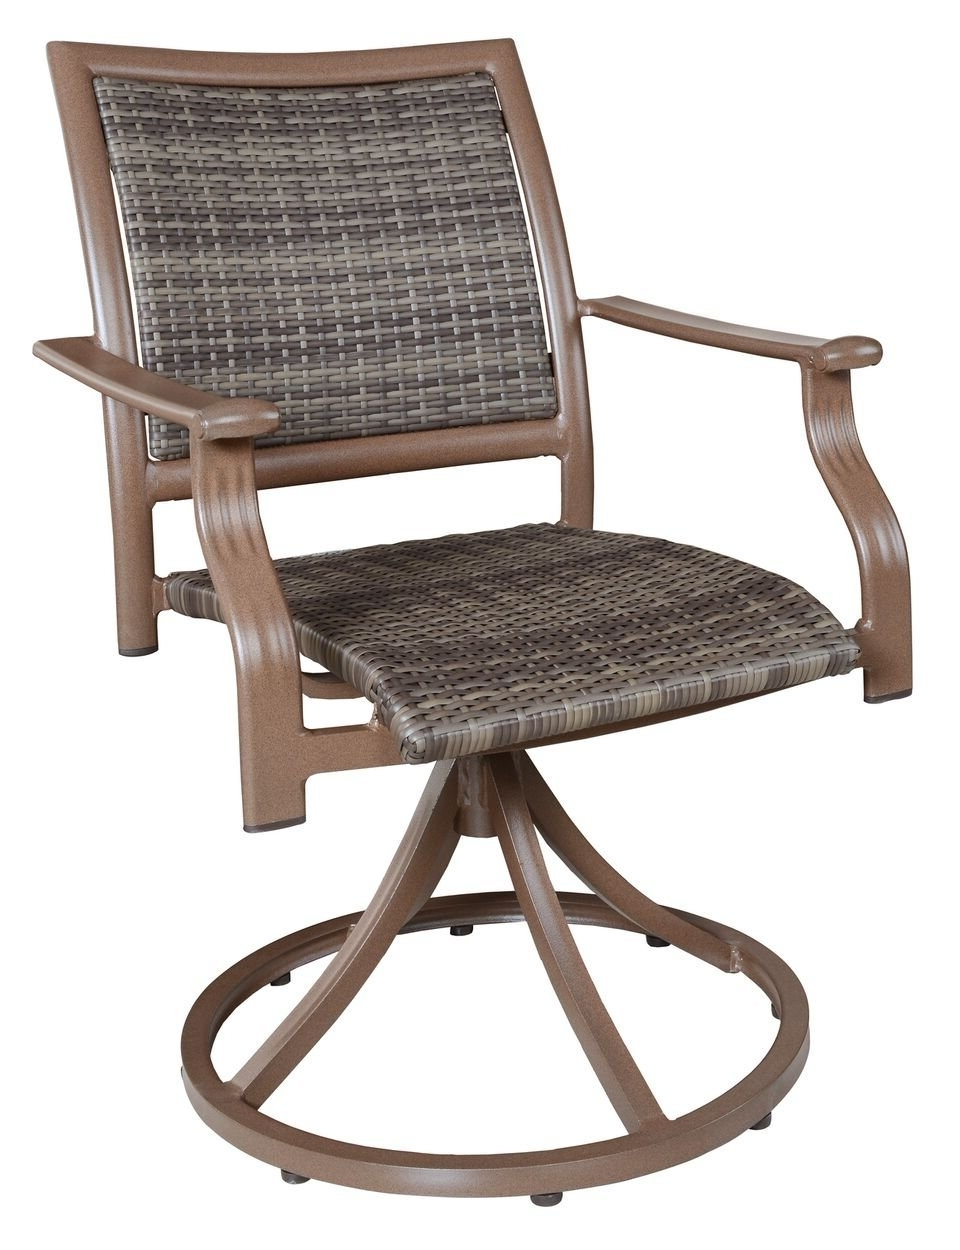 High Chair : Brown Stackable Outdoor Chairs Bronze Outdoor Chairs With Most Current Hampton Bay Rocking Patio Chairs (View 15 of 15)